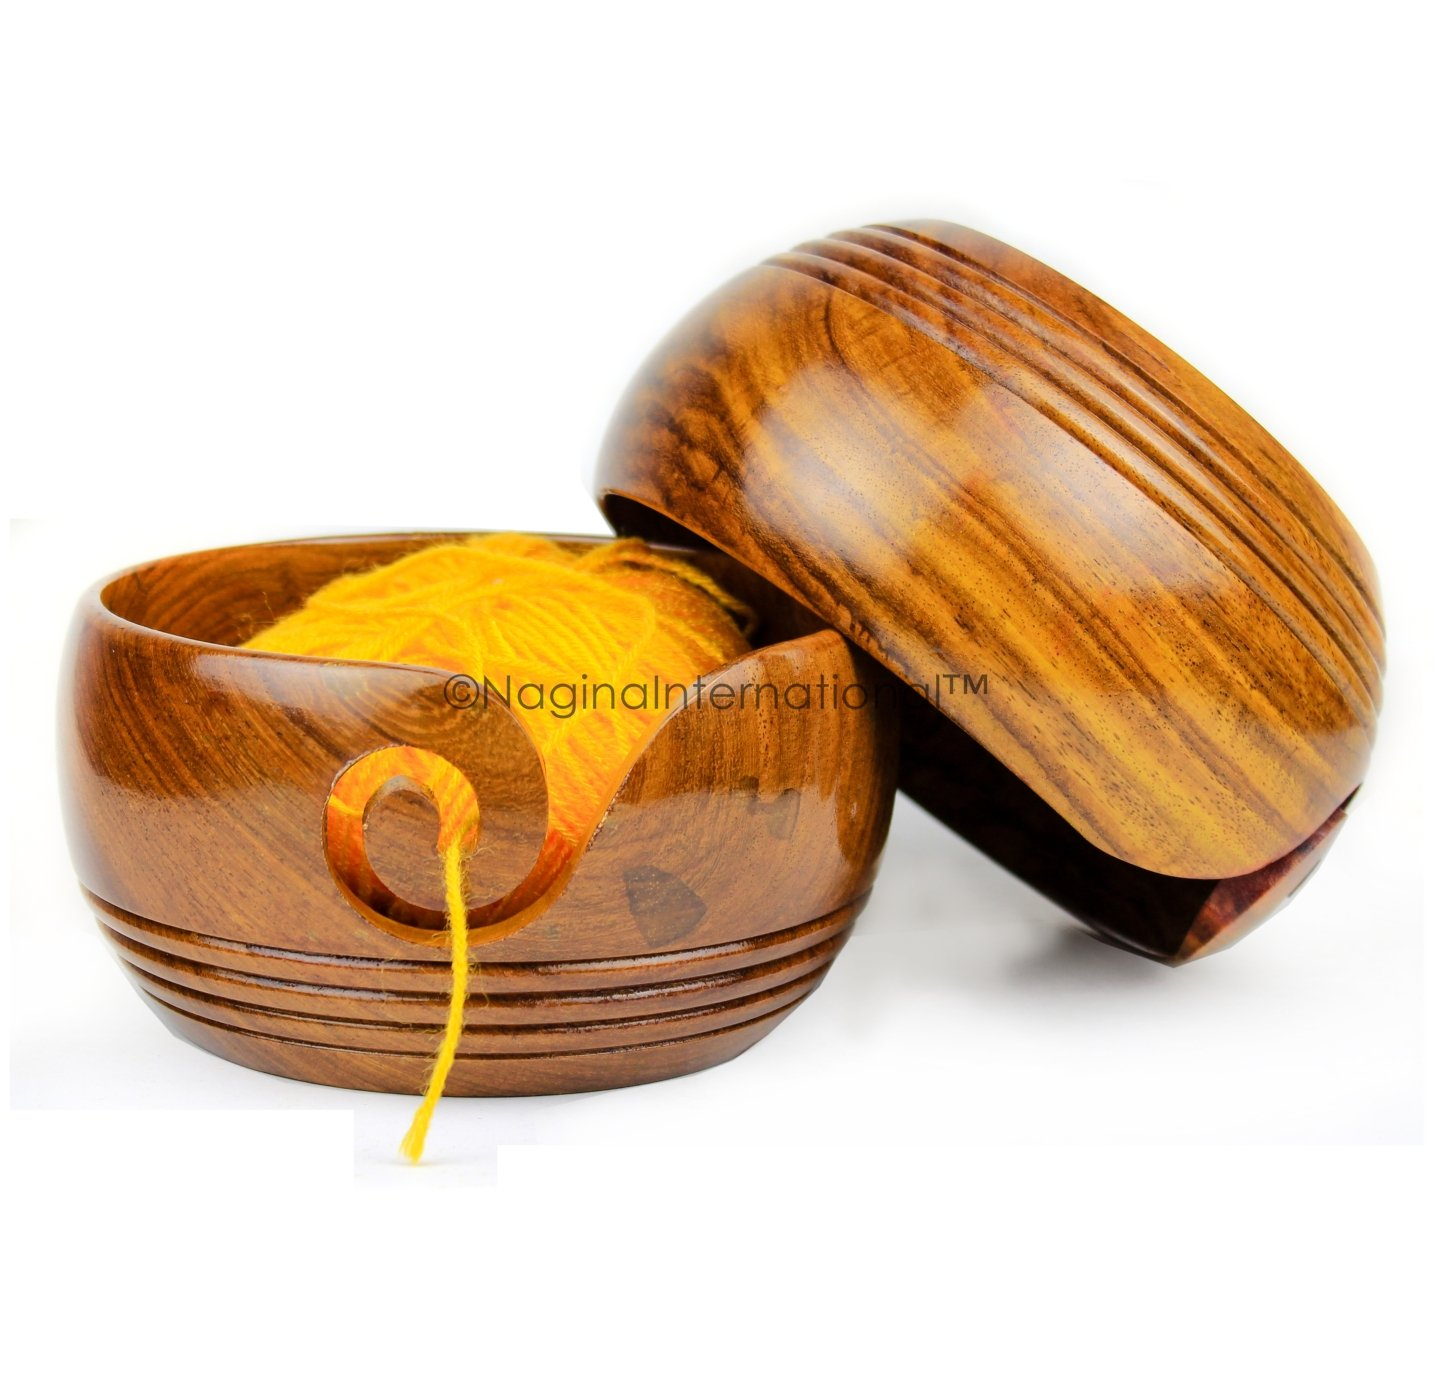 Nagina International Solid Teak Wood Crafted Wooden Yarn Ball Storage Bowl with Spiral Yarn Dispenser & Decorative Rings   Knitting Crochet Accessories (Rosewood, Large)